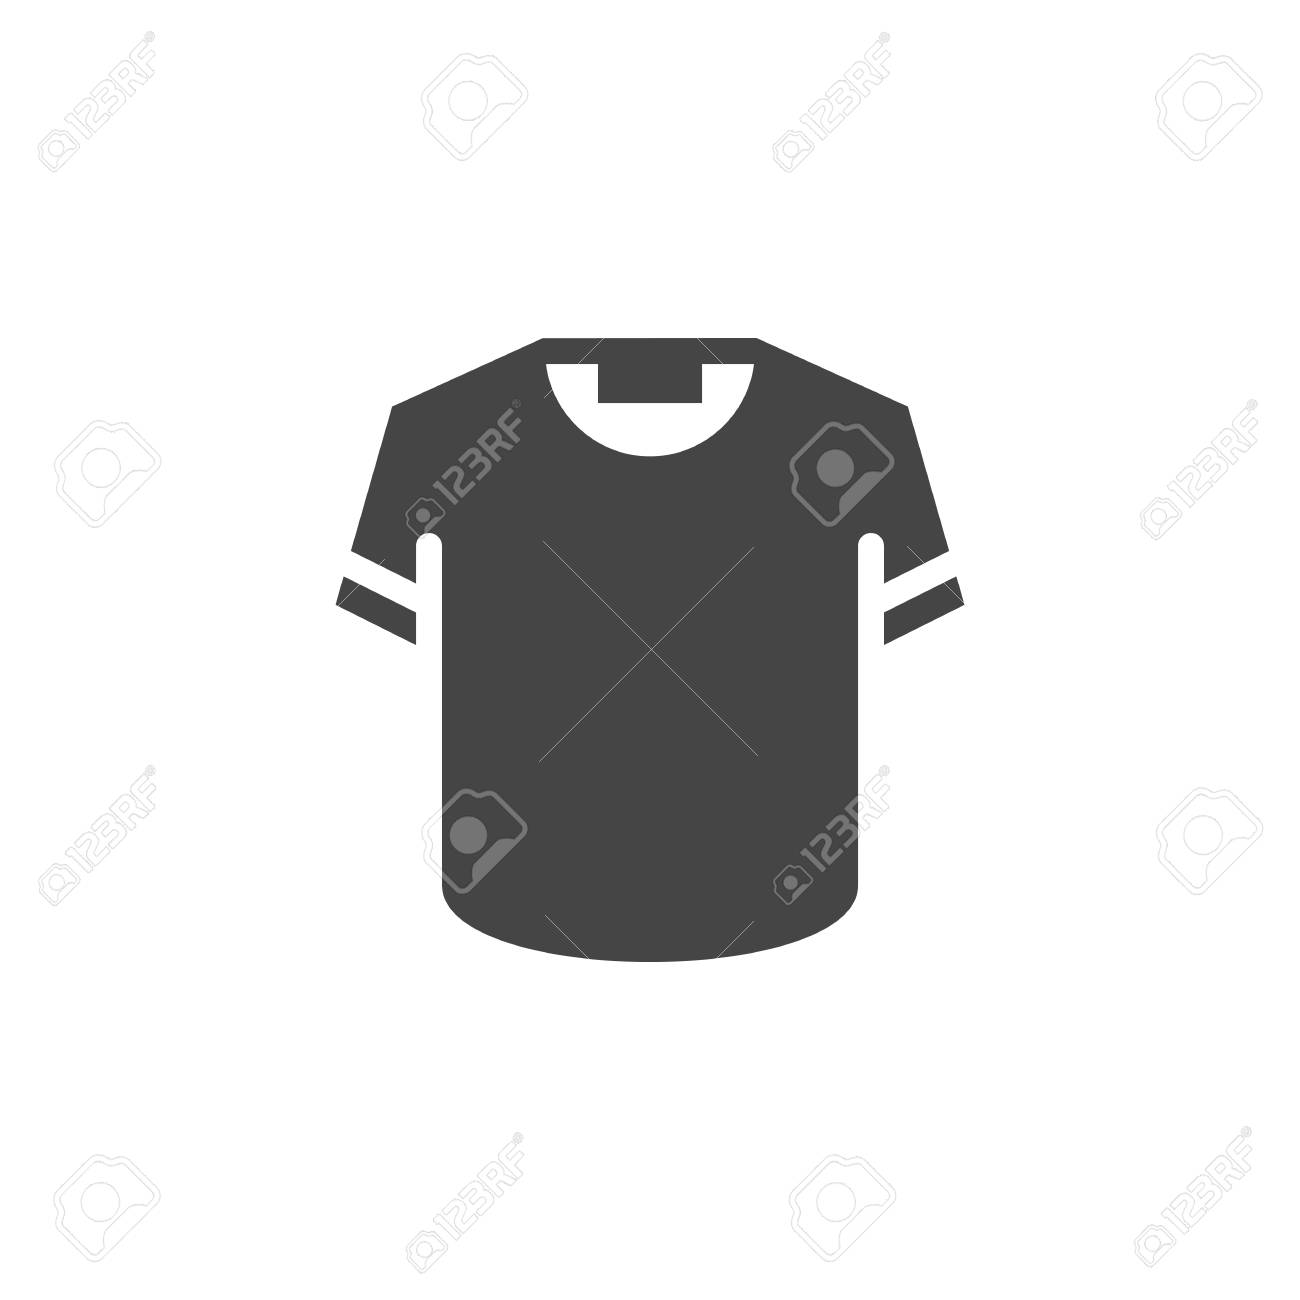 54ca46e91 T-shirt icon in black flat design. Button or sign for online store,